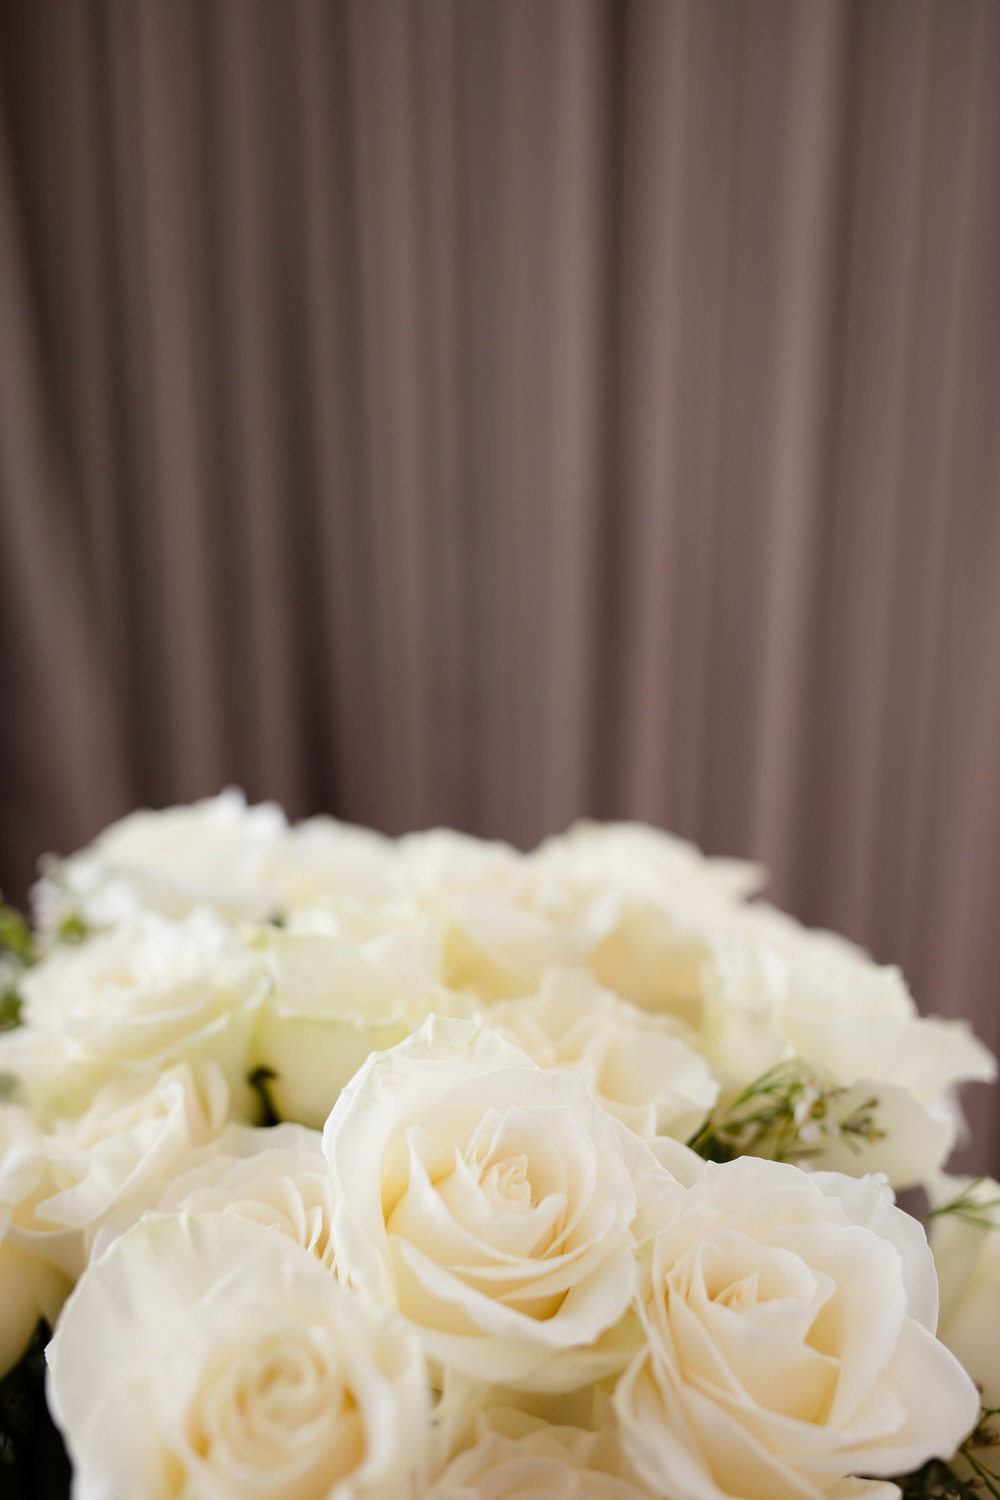 1752__79A5993.jpgFleur-Inc-Chicago-Wedding-19-East-Studio-This-Is-Photography-Wedding-Party-Bouquets-Garden-rose